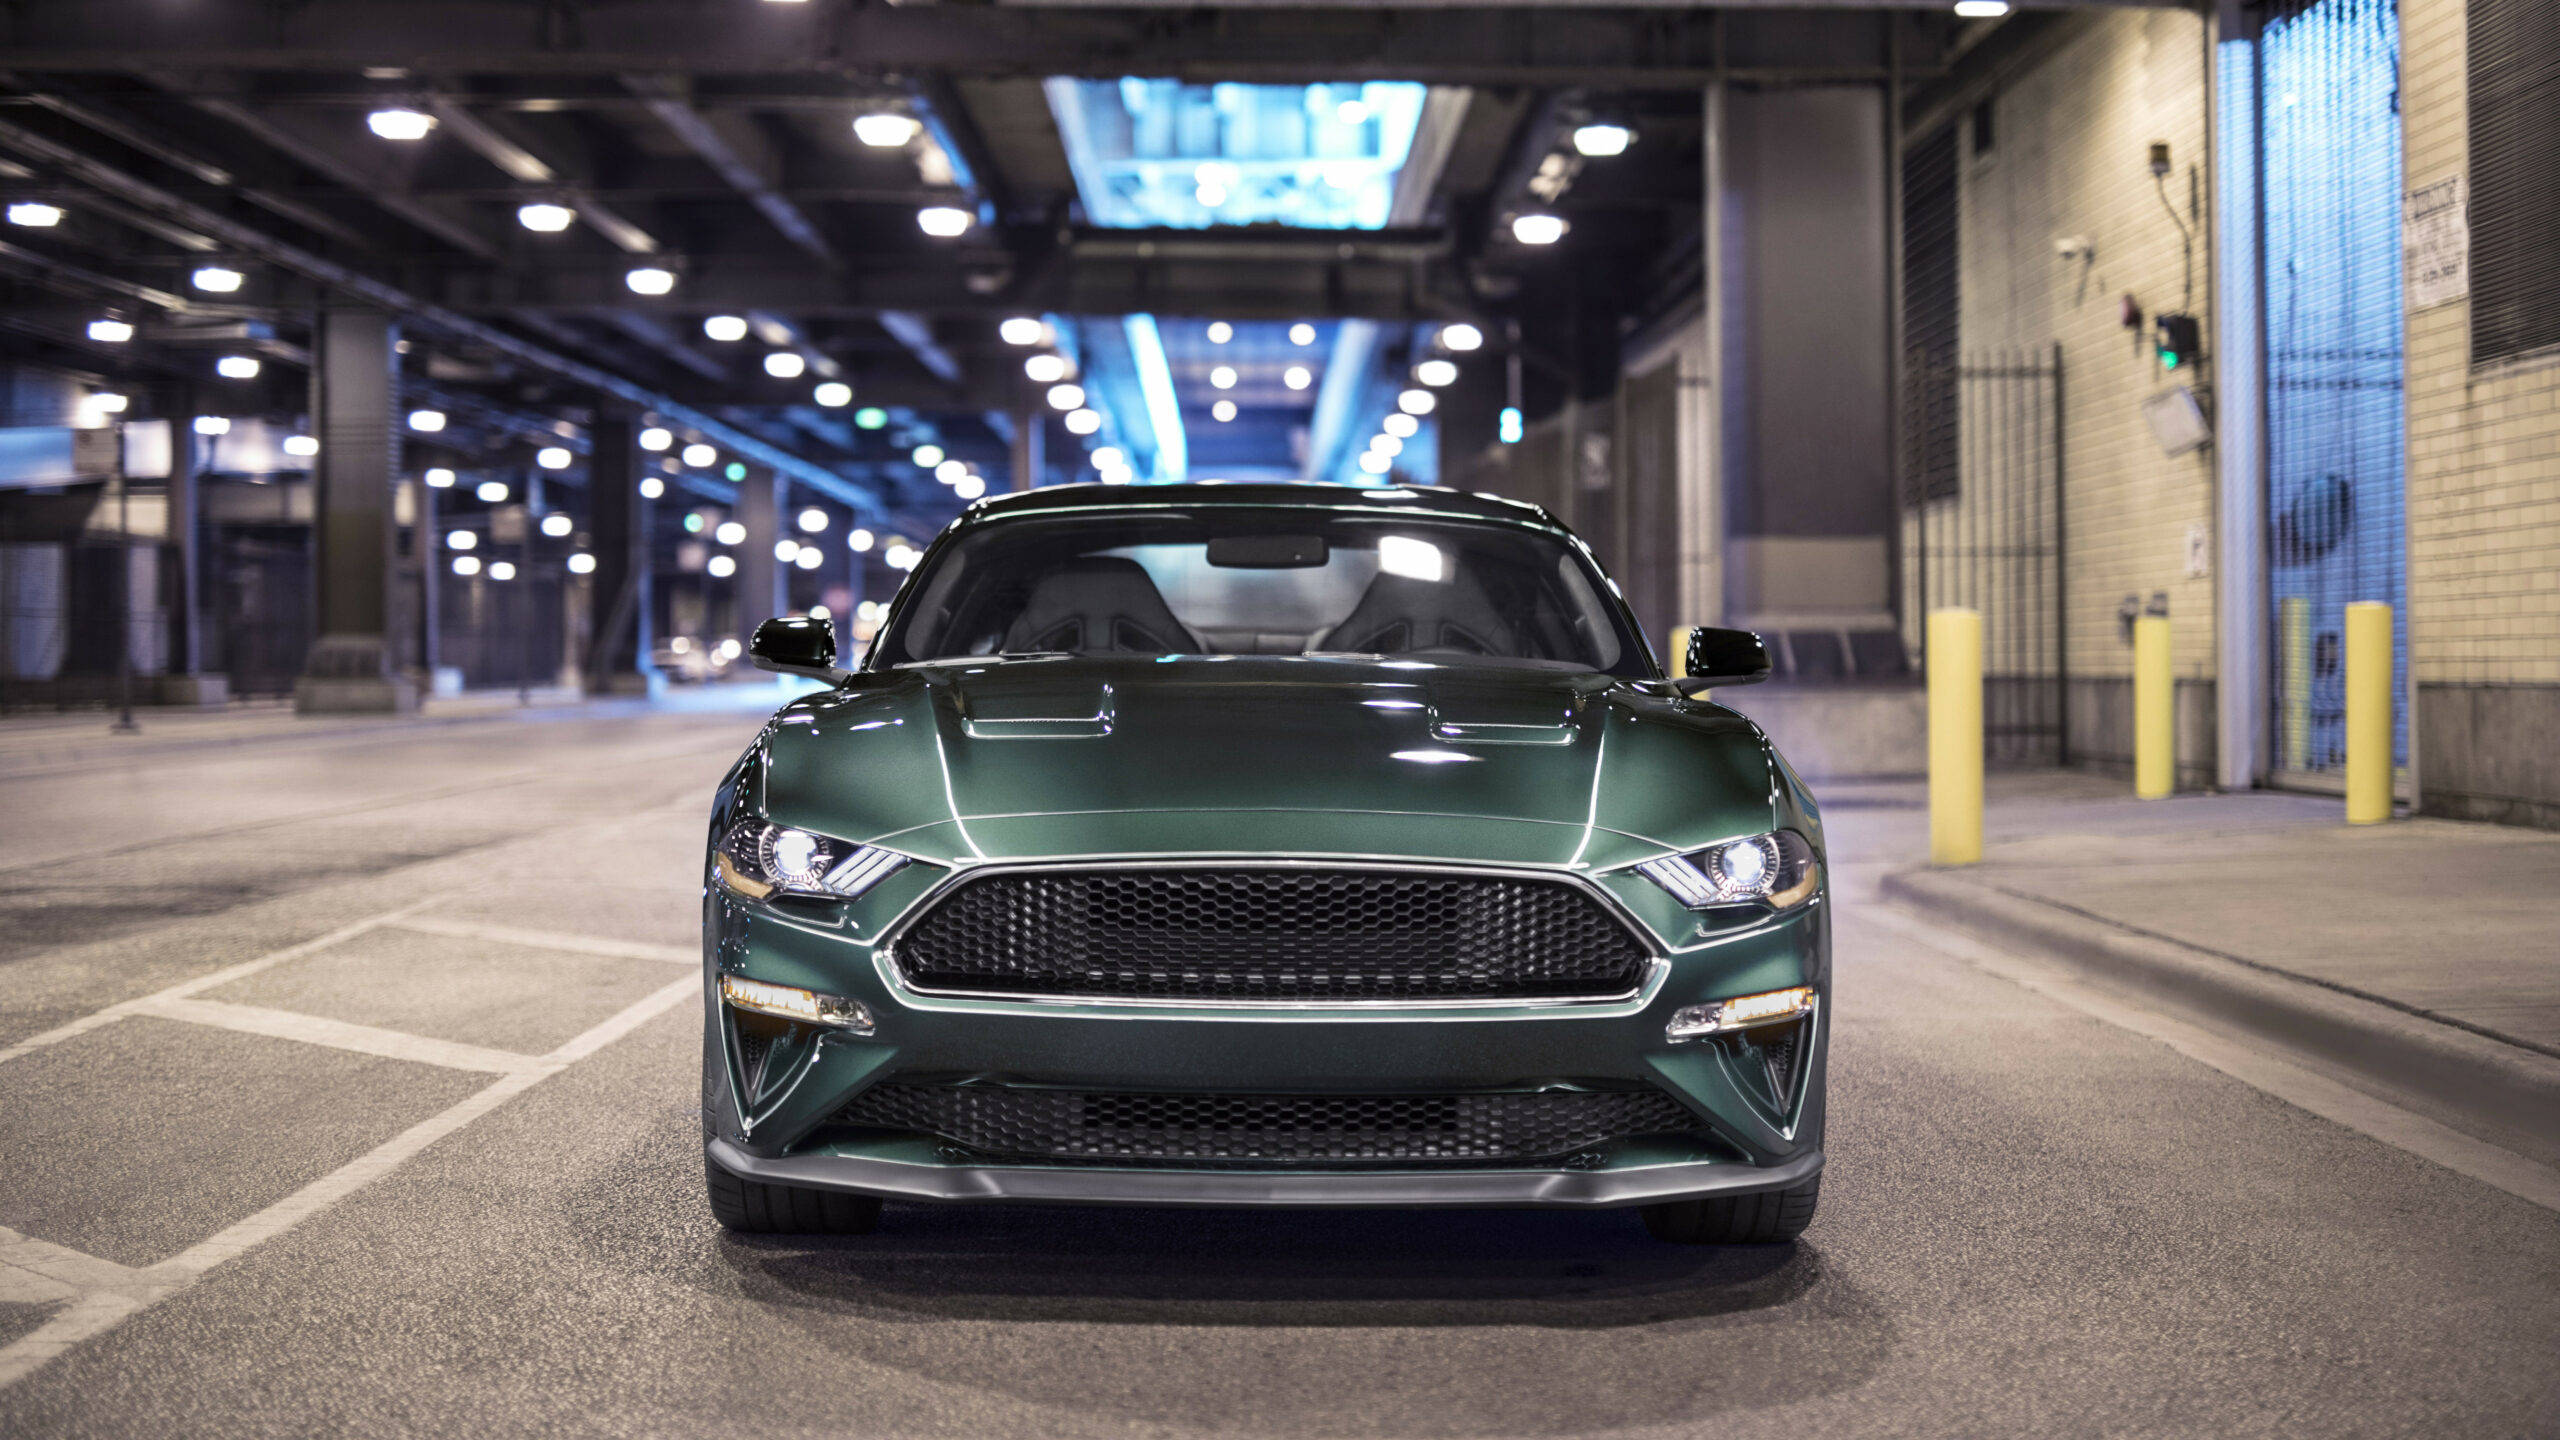 Exterior and Interior 2022 Mustang